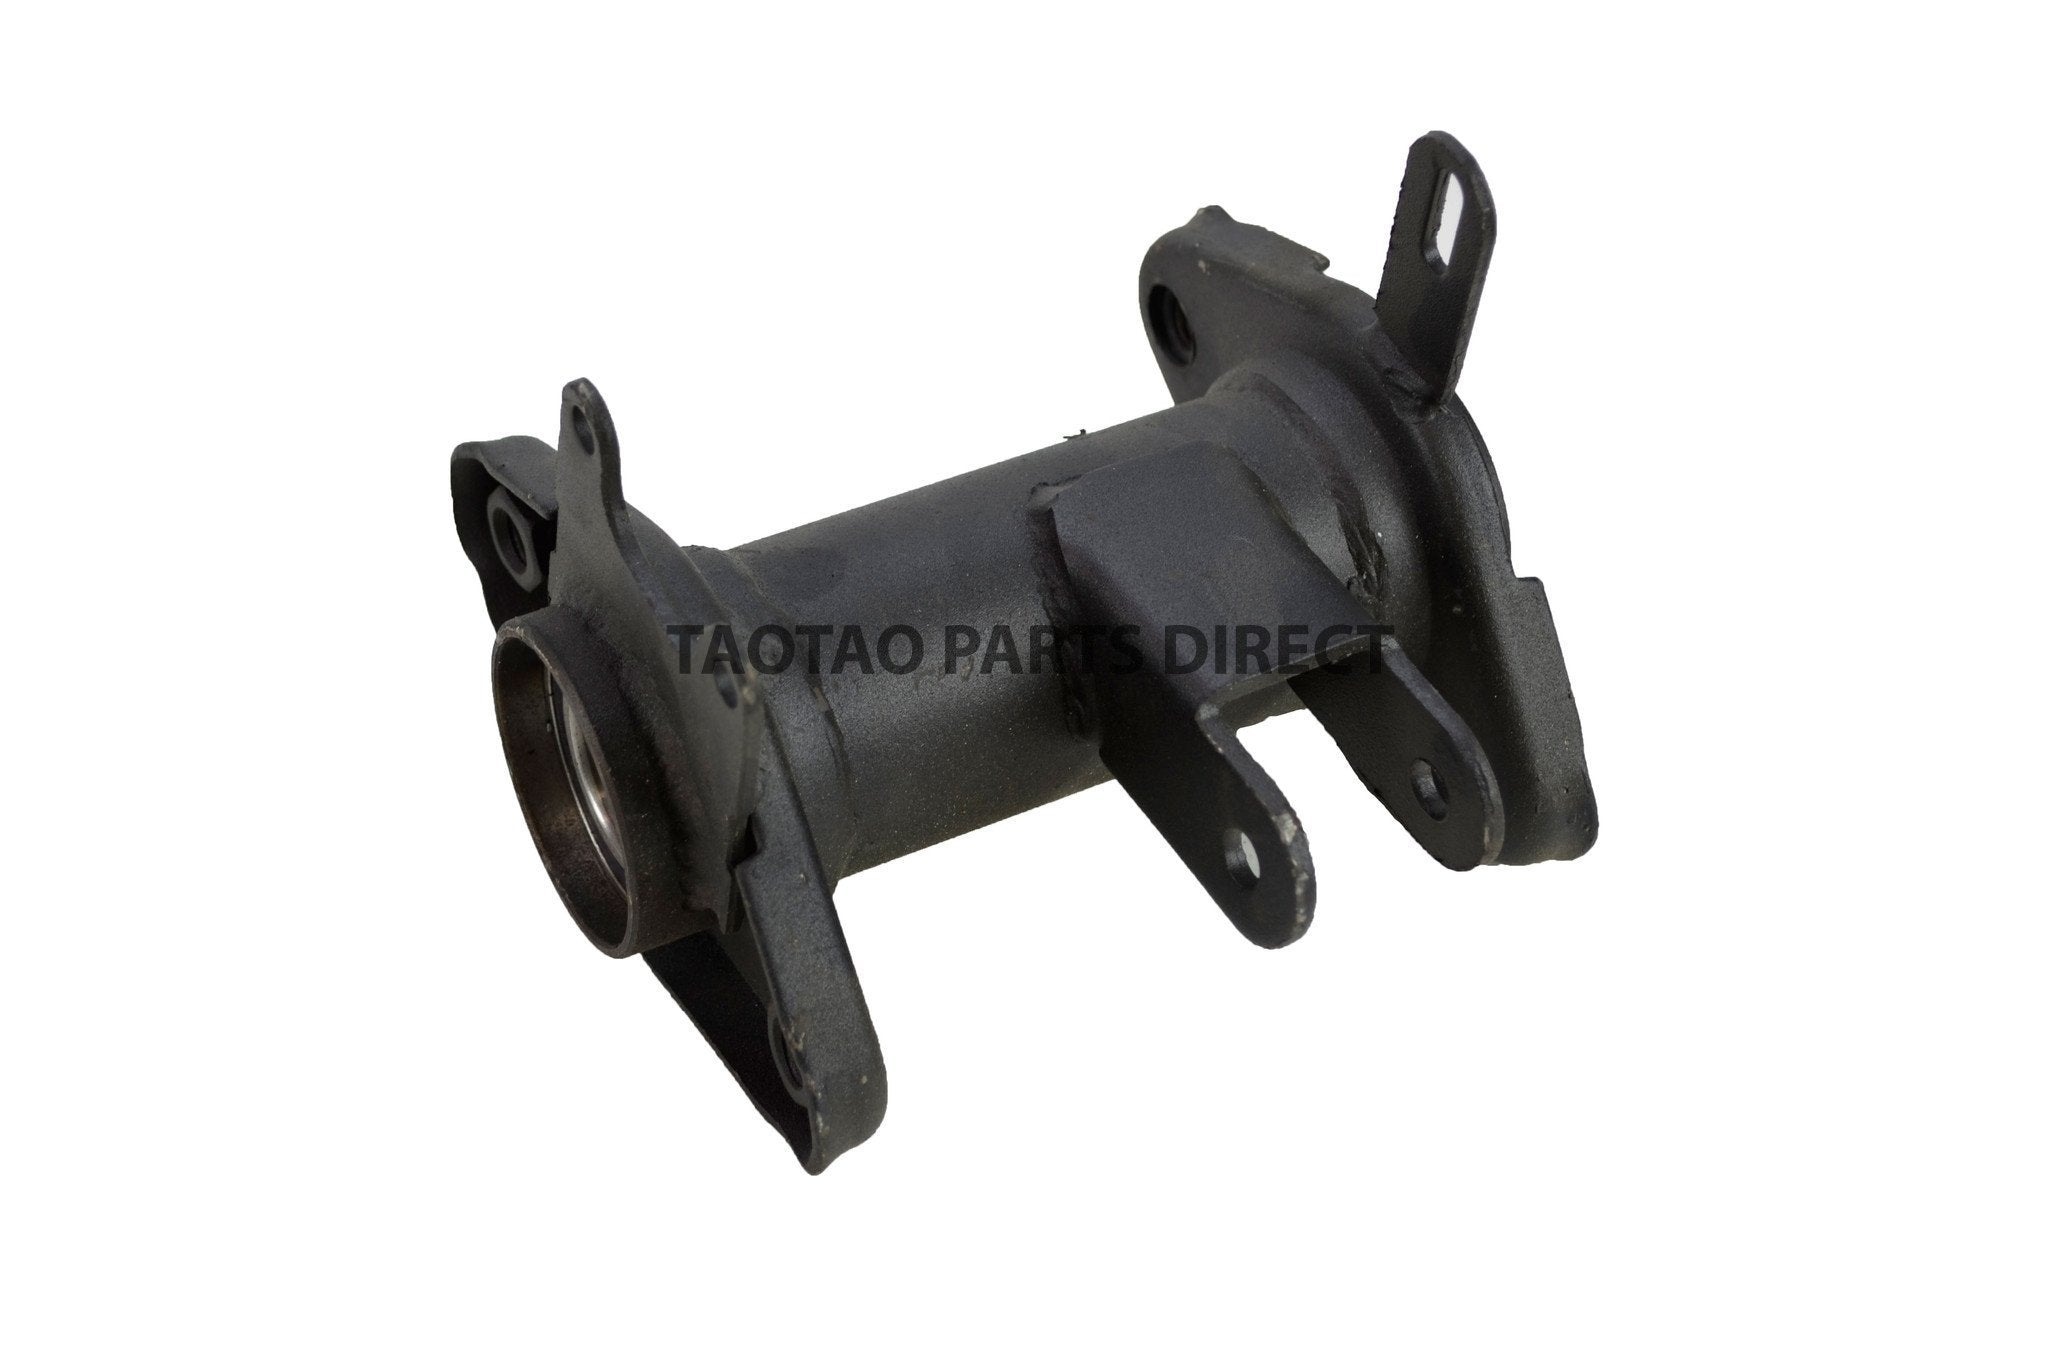 ATA250D Axle Housing - TaoTaoPartsDirect.com